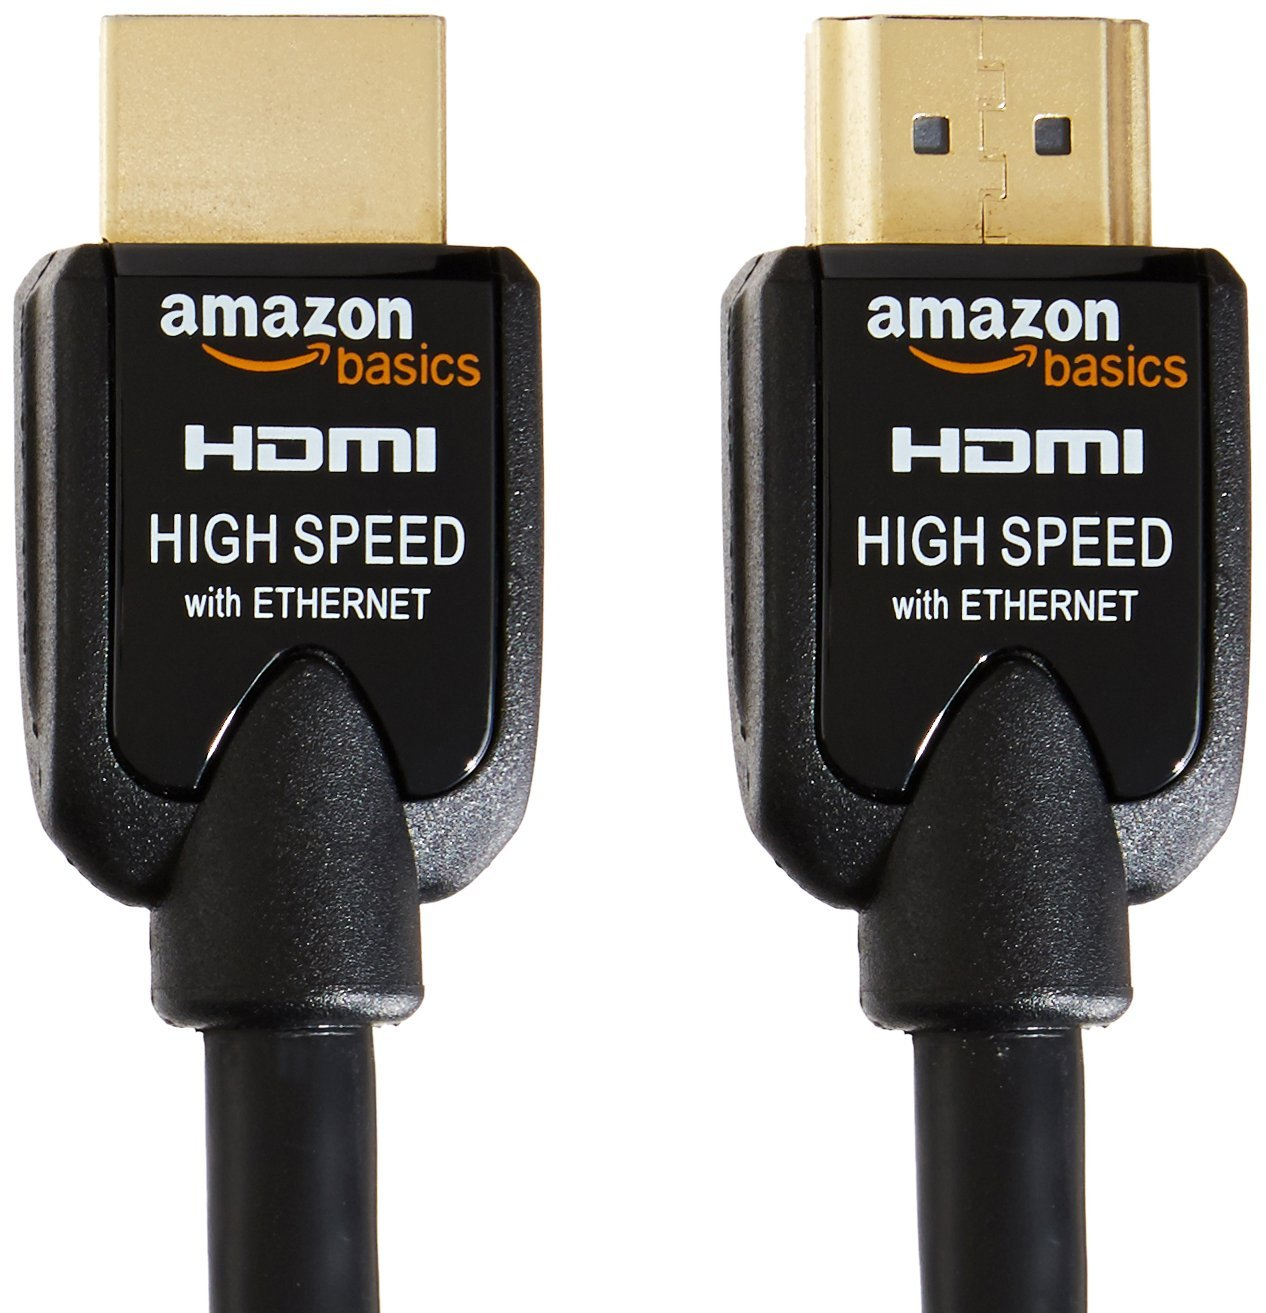 AmazonBasics High Speed HDMI Cable